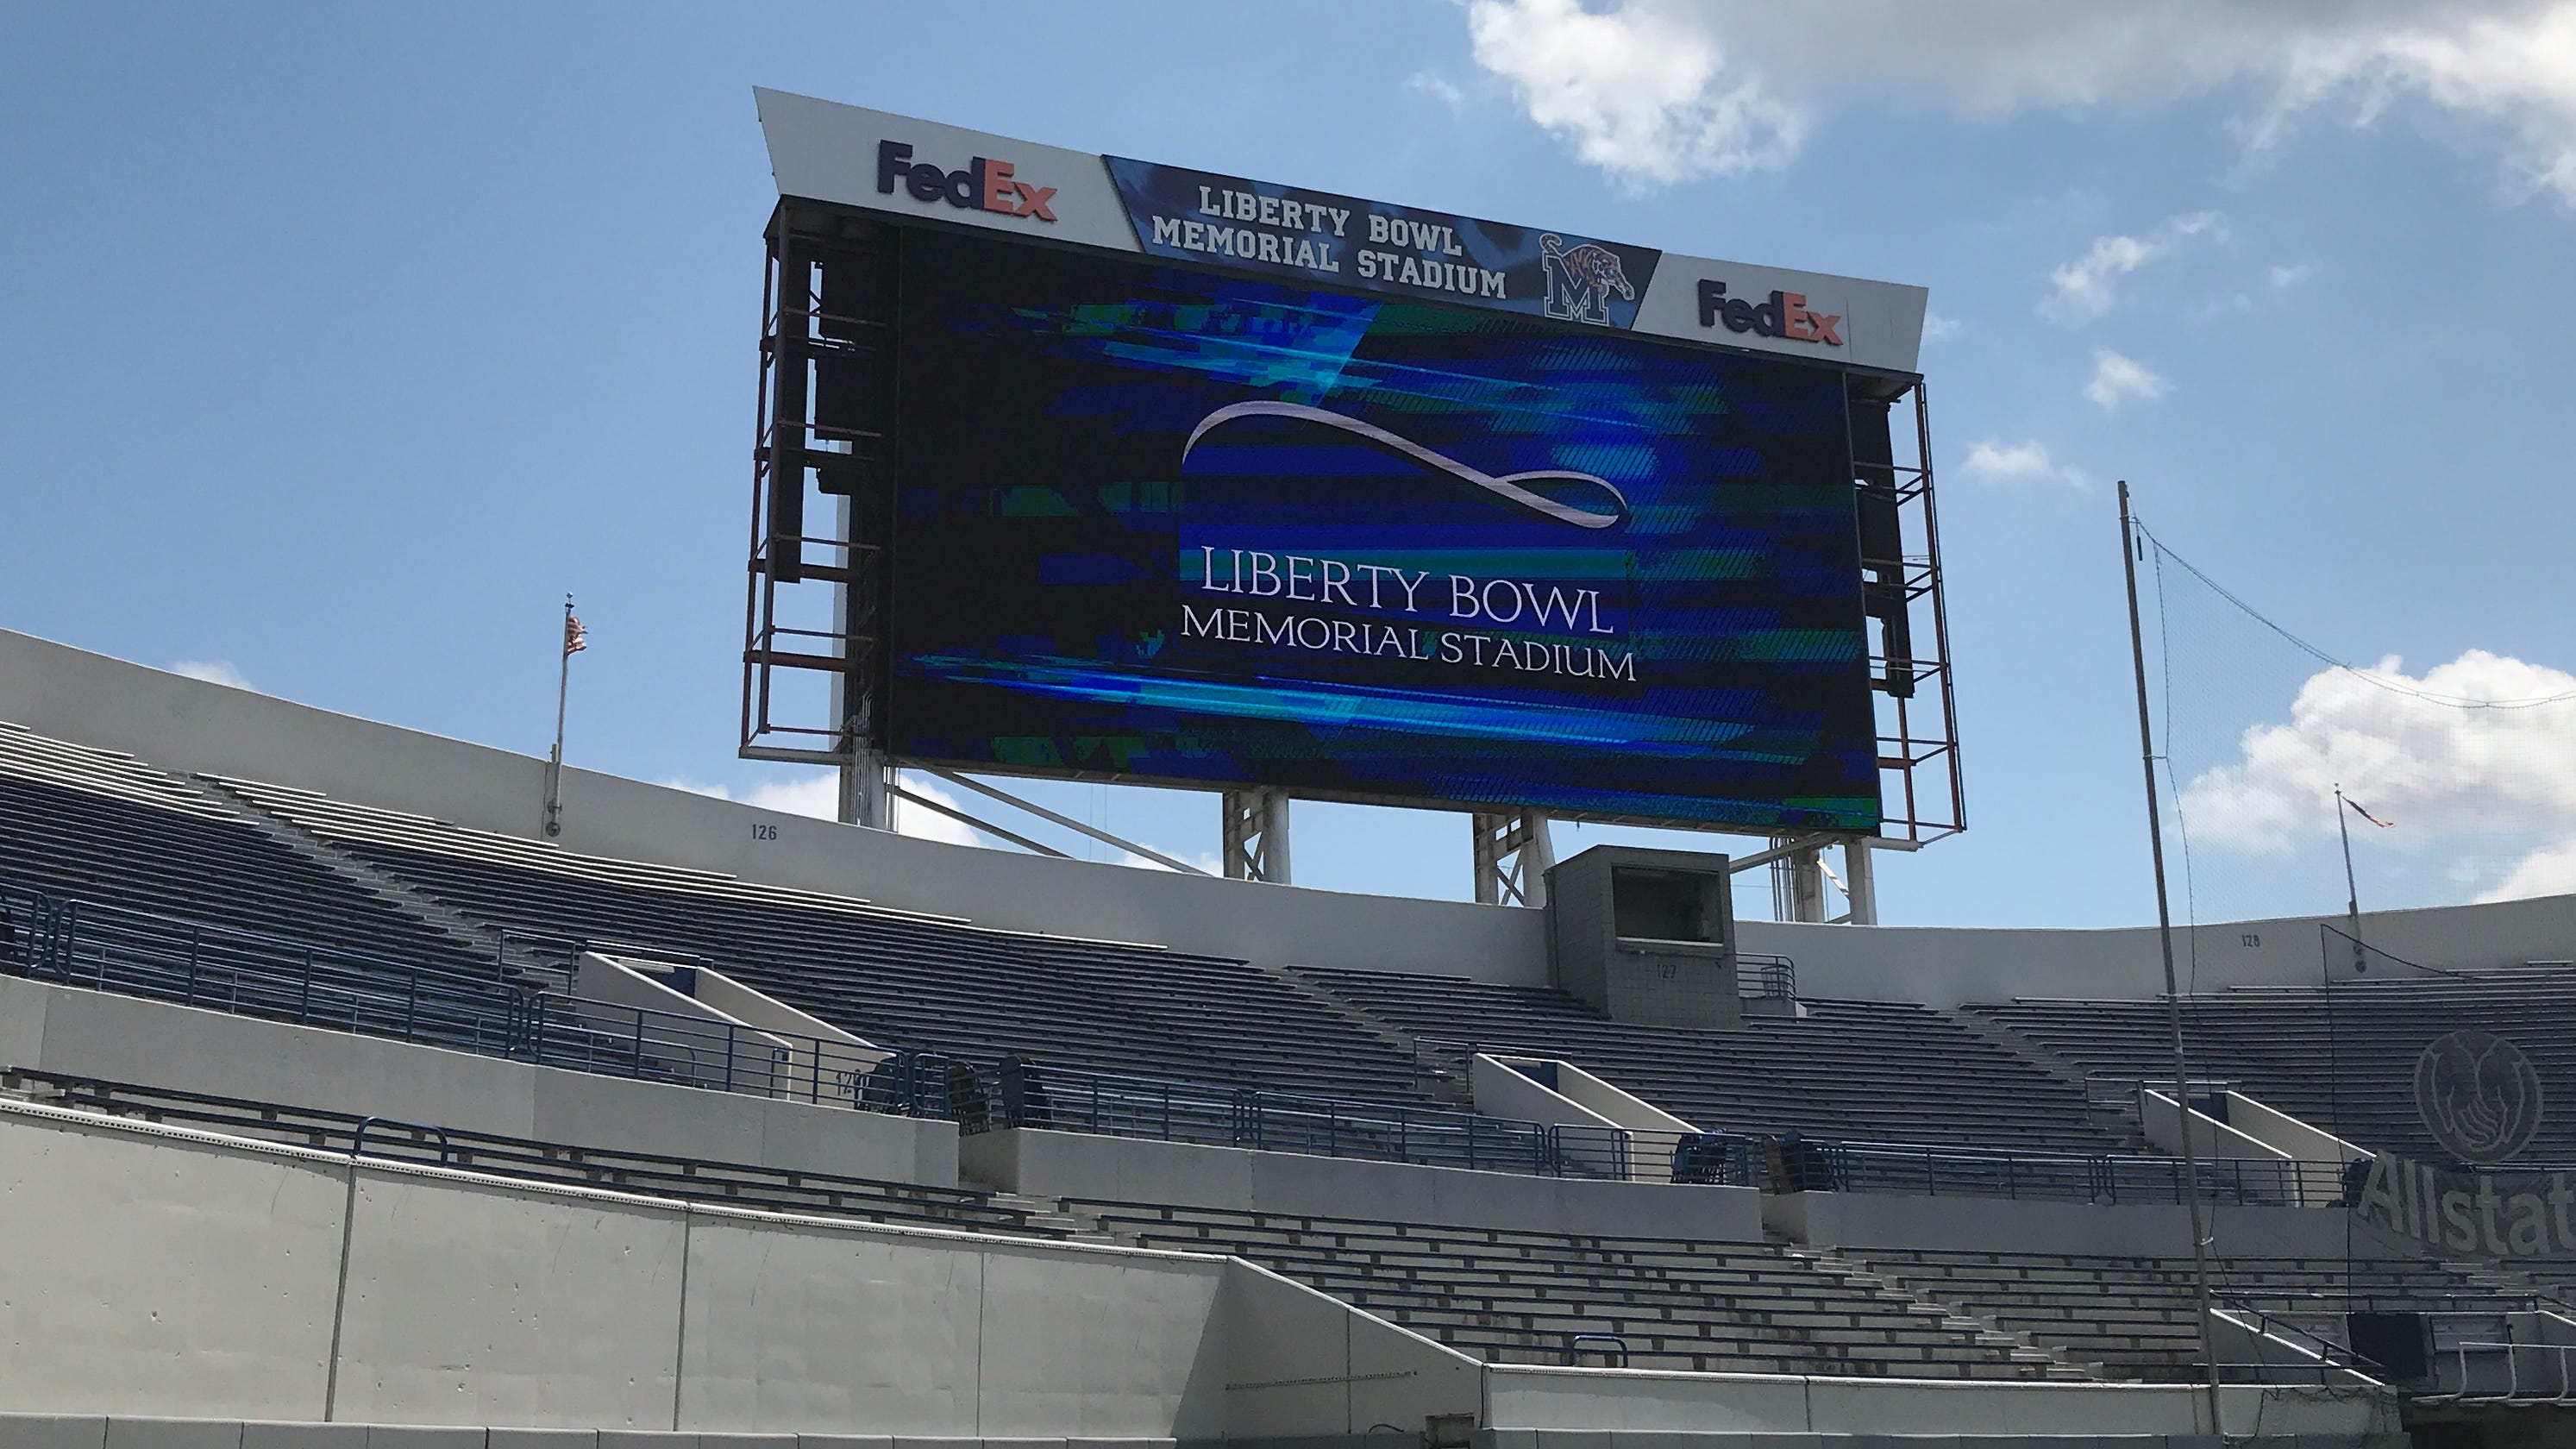 Memphis Liberty Bowl Memorial Stadium Get Upgraded Video Boards